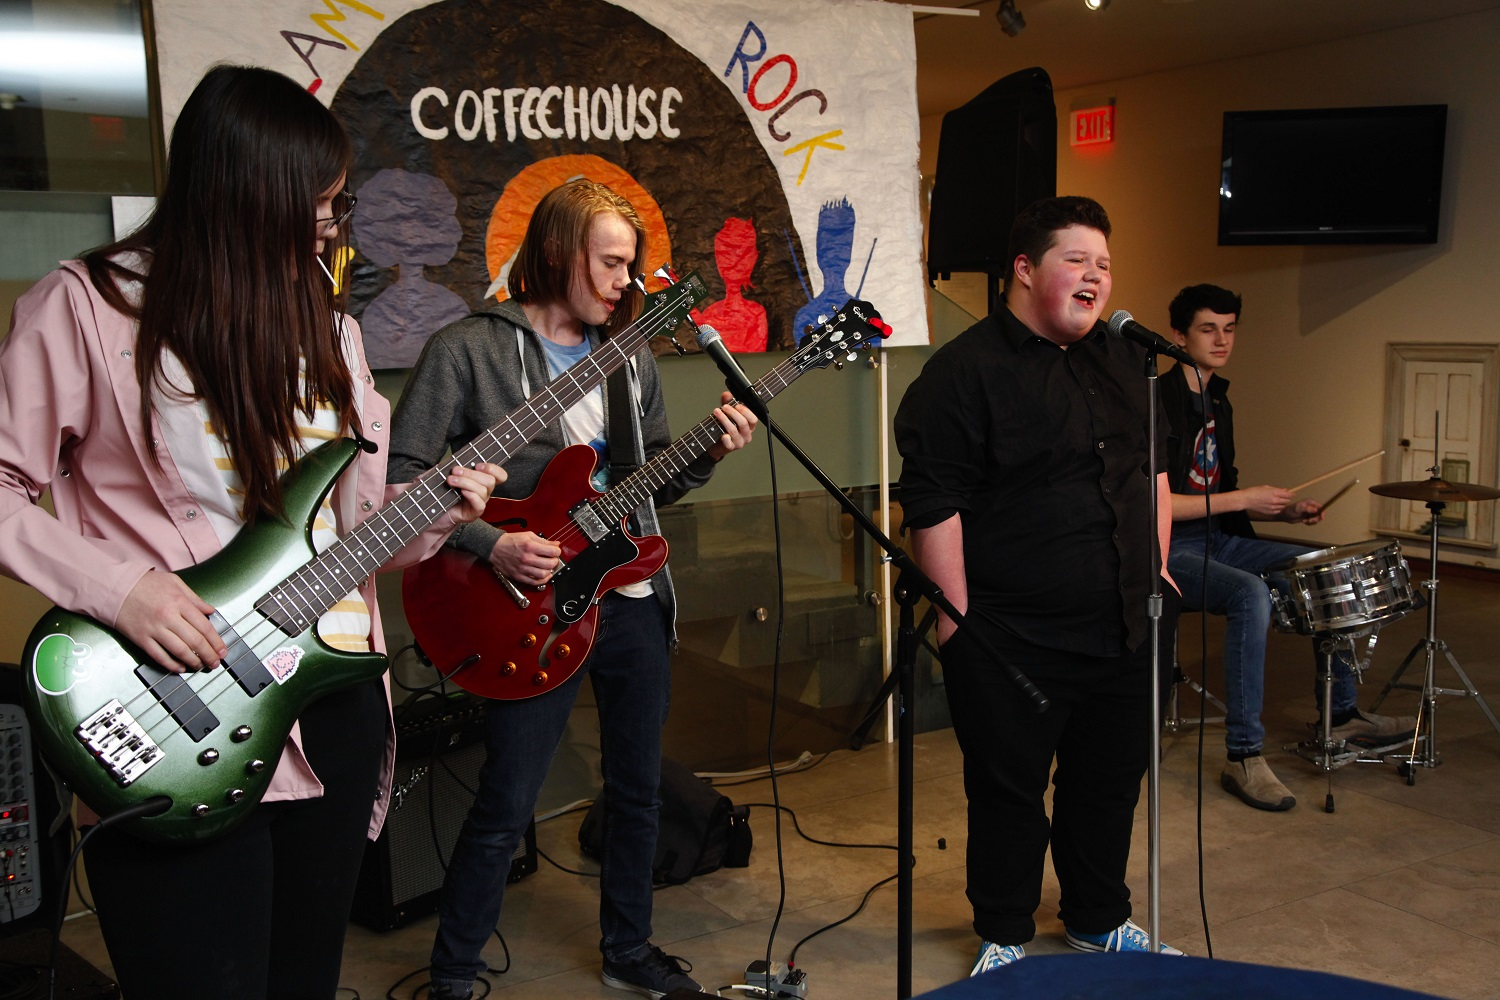 Youth music group performing at the Glam Rock Spring Coffeehouse at the MacLaren Art Centre